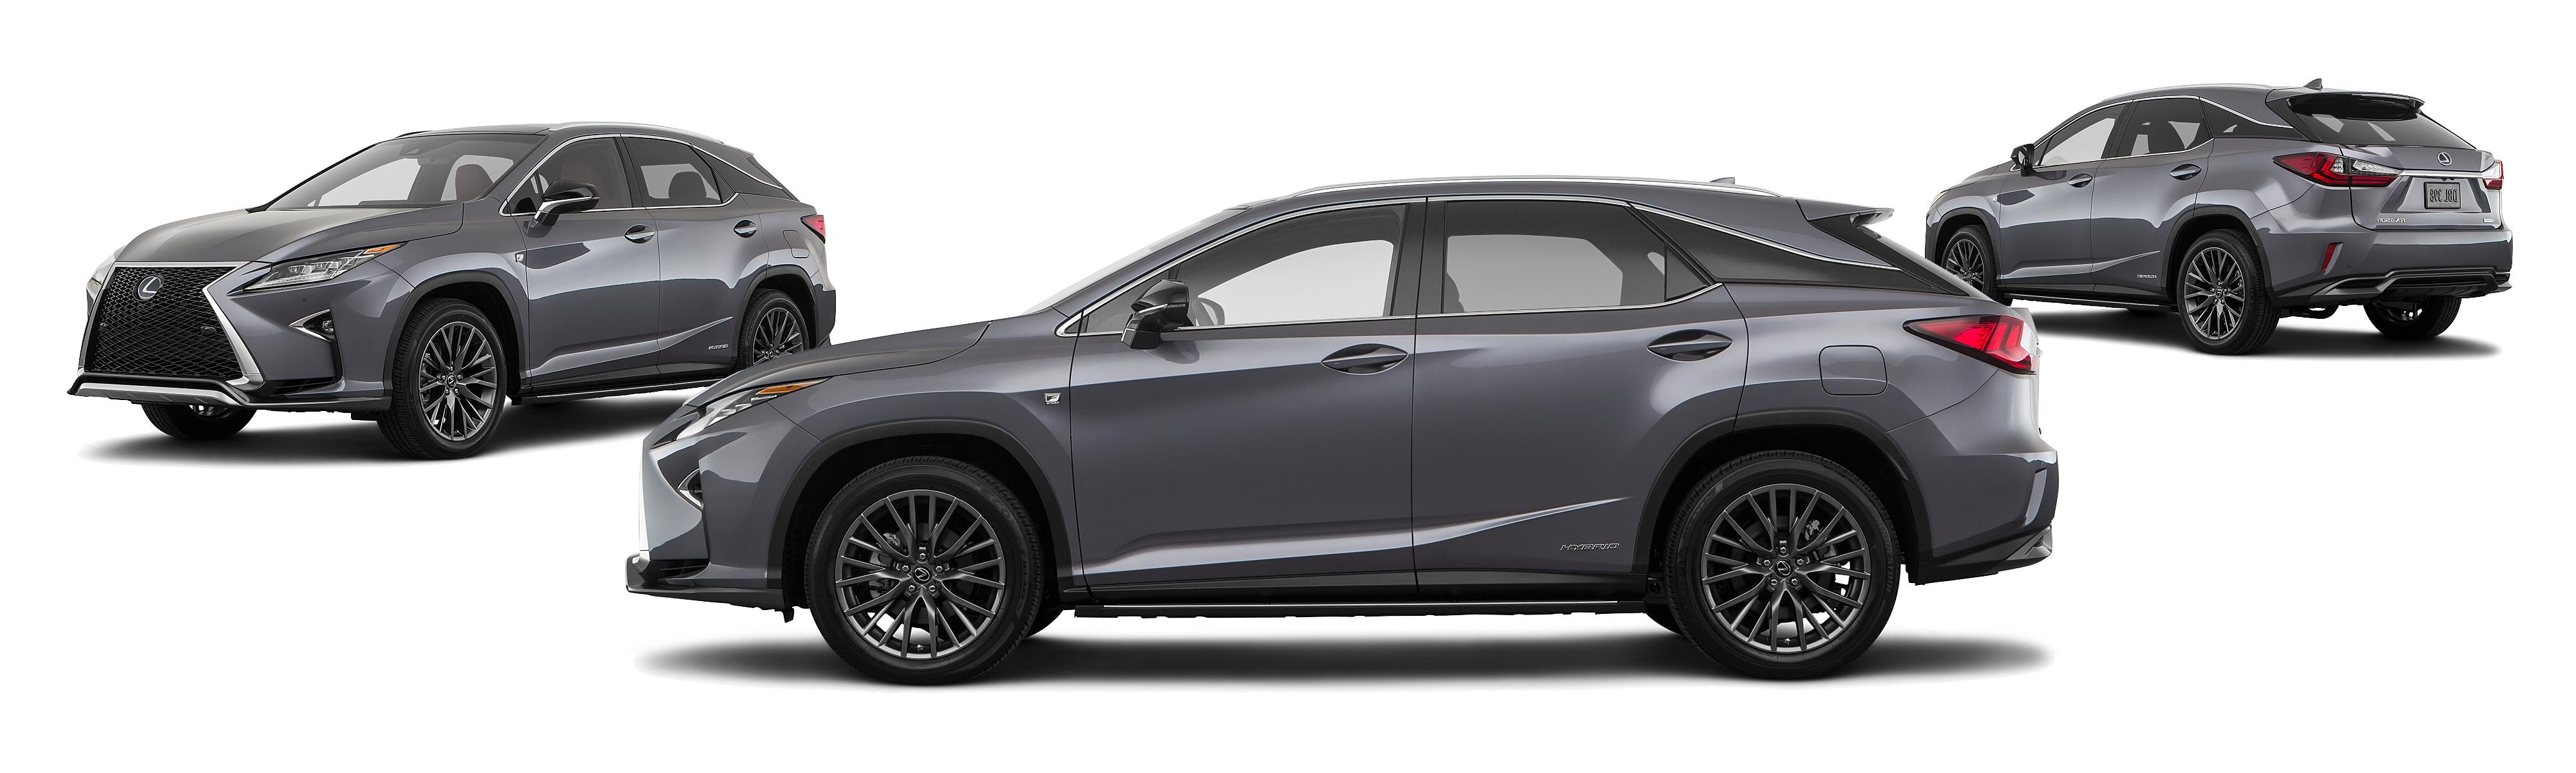 lexus in la tx make comparing dealership mkx lease an ford htm to inquiry rx grange lincoln new